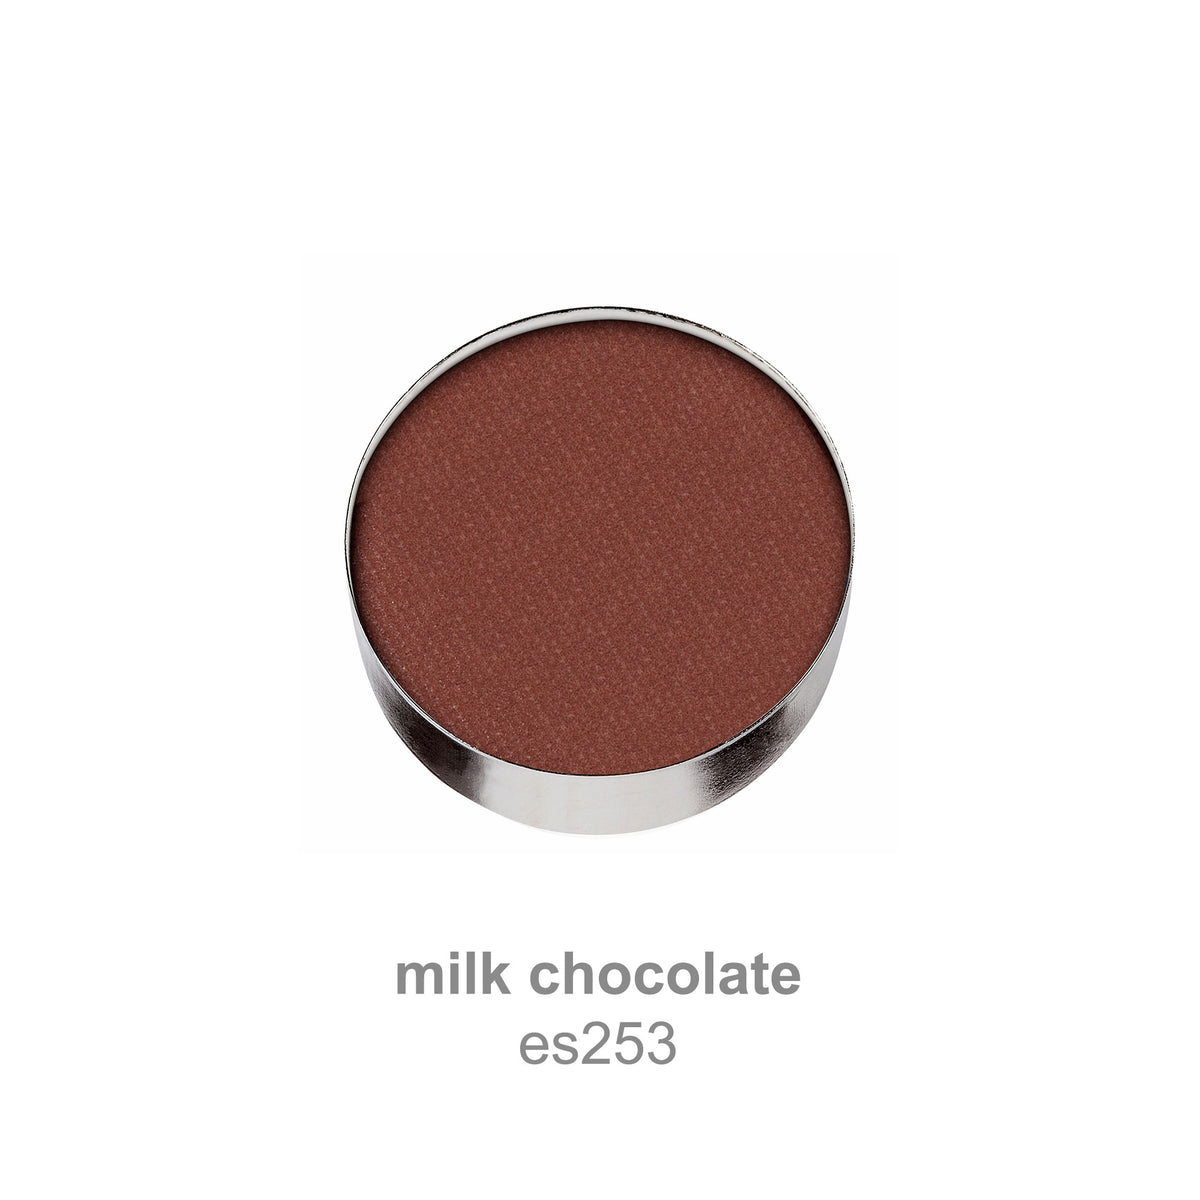 milk chocolate (es253)